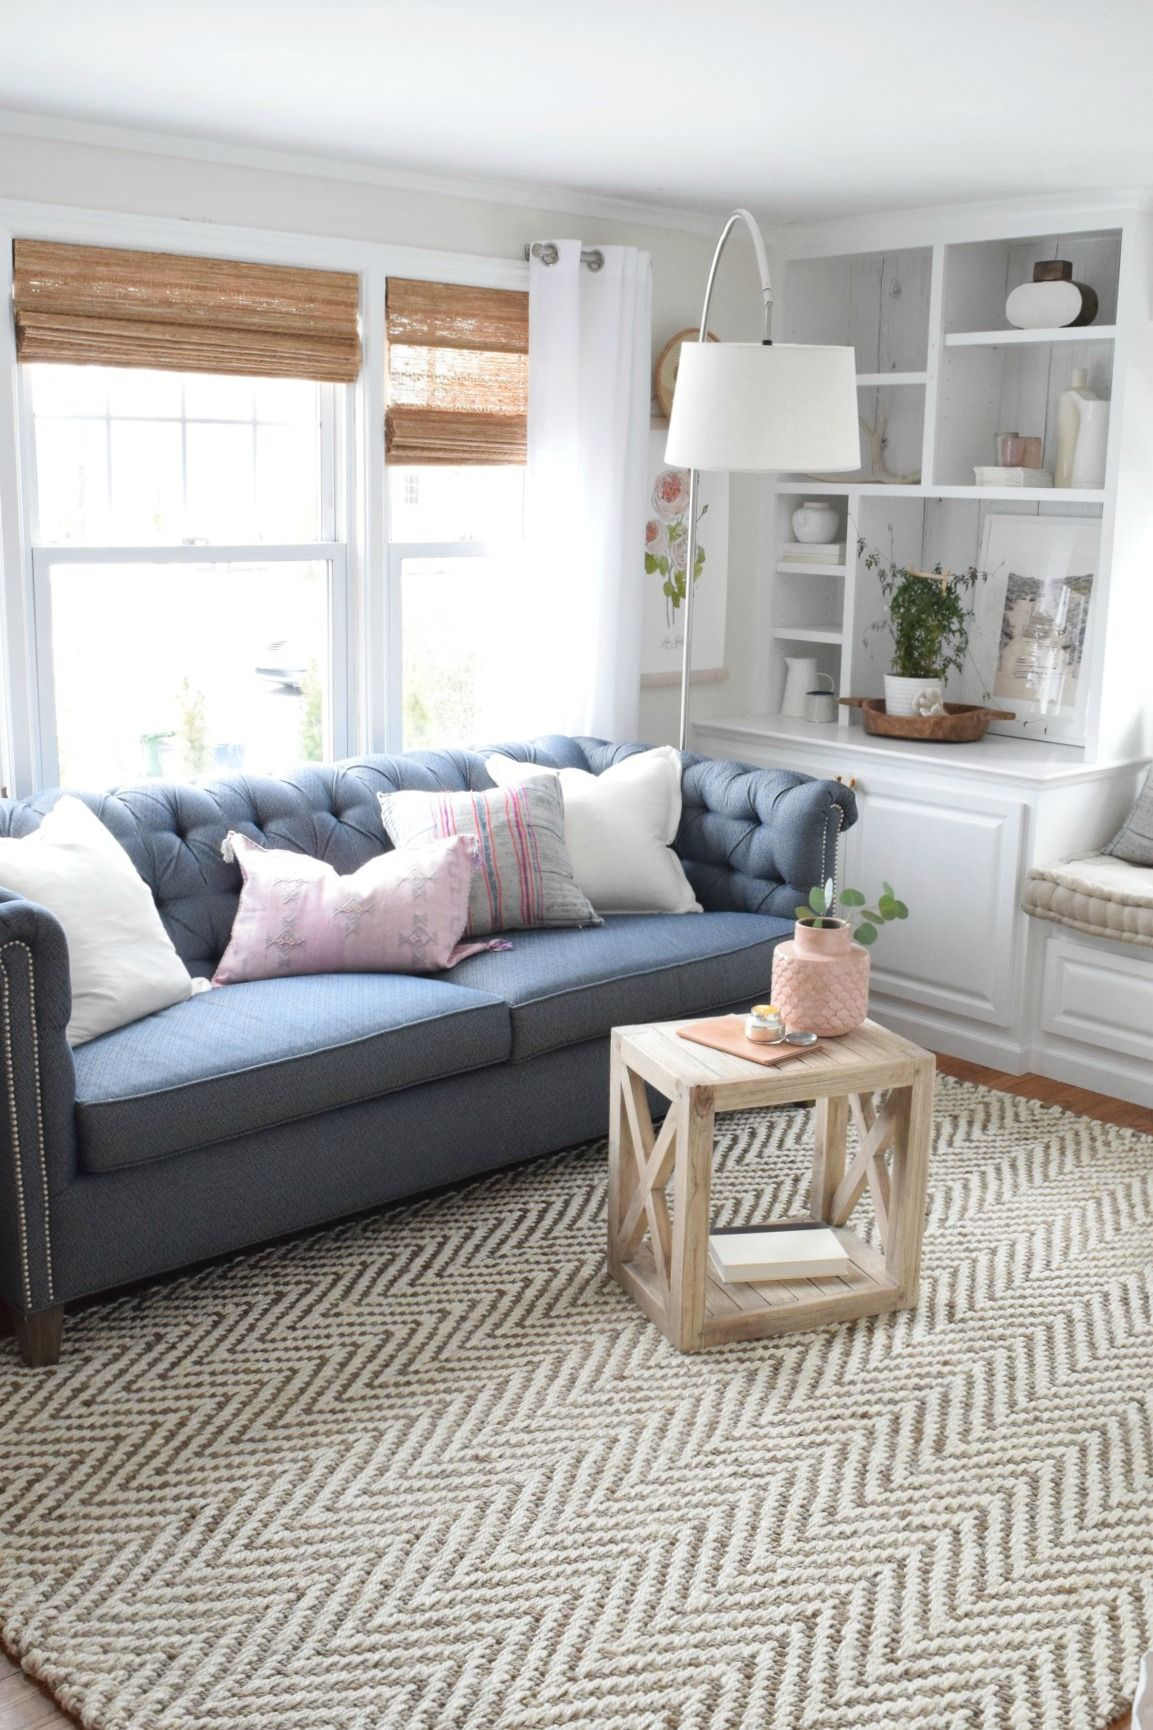 Spring home decor ideas bright living room also tour in our cape rh pinterest